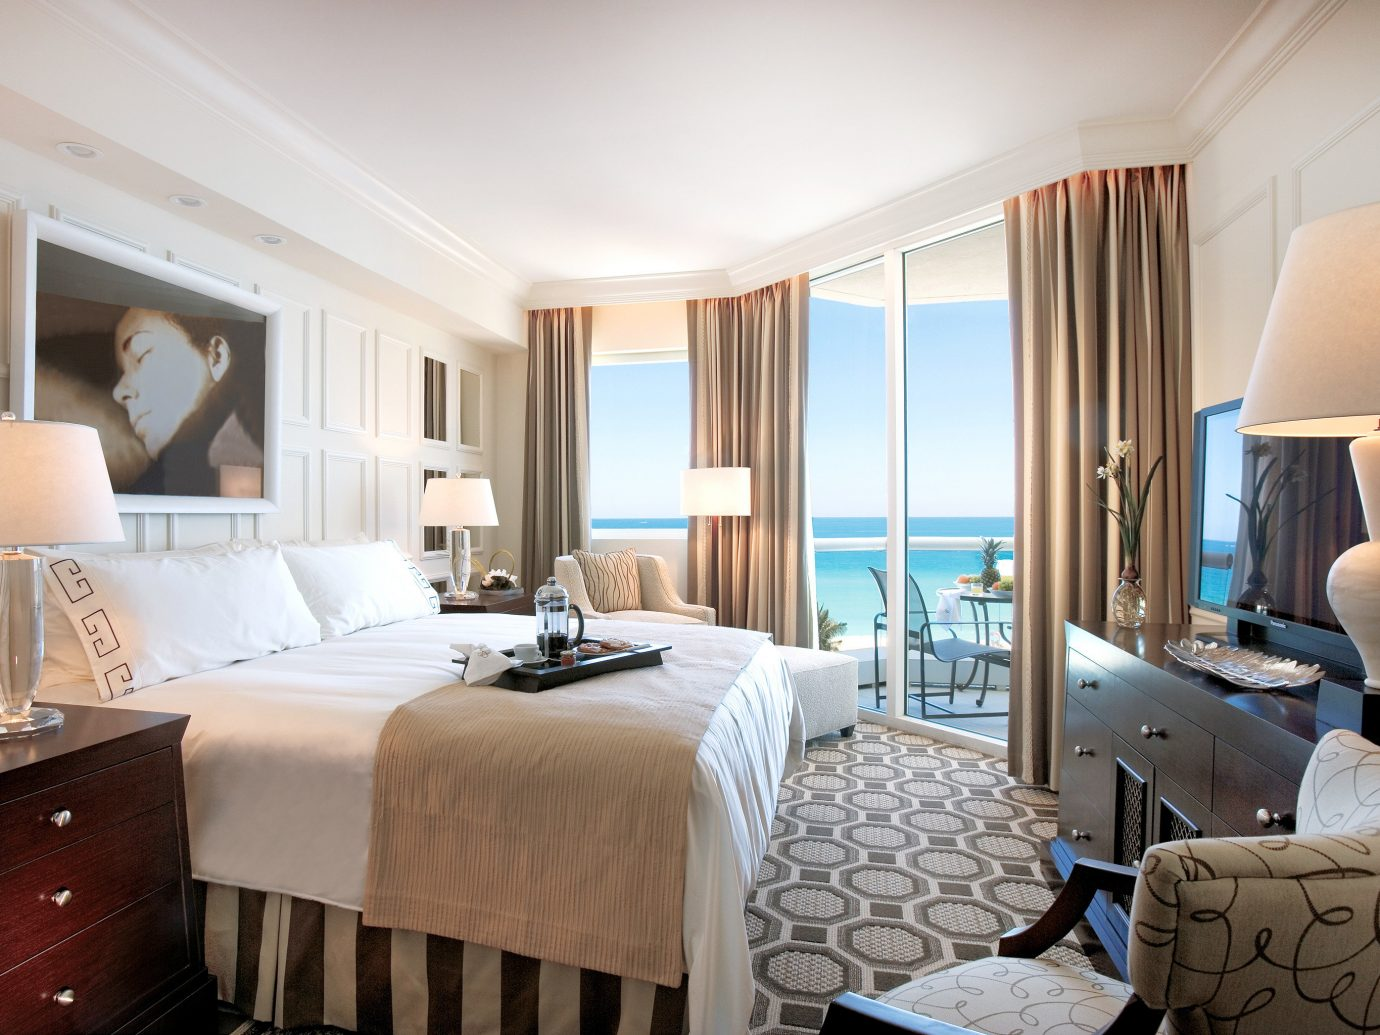 Bedroom at Acqualina Resort & Spa - Miami Hotel